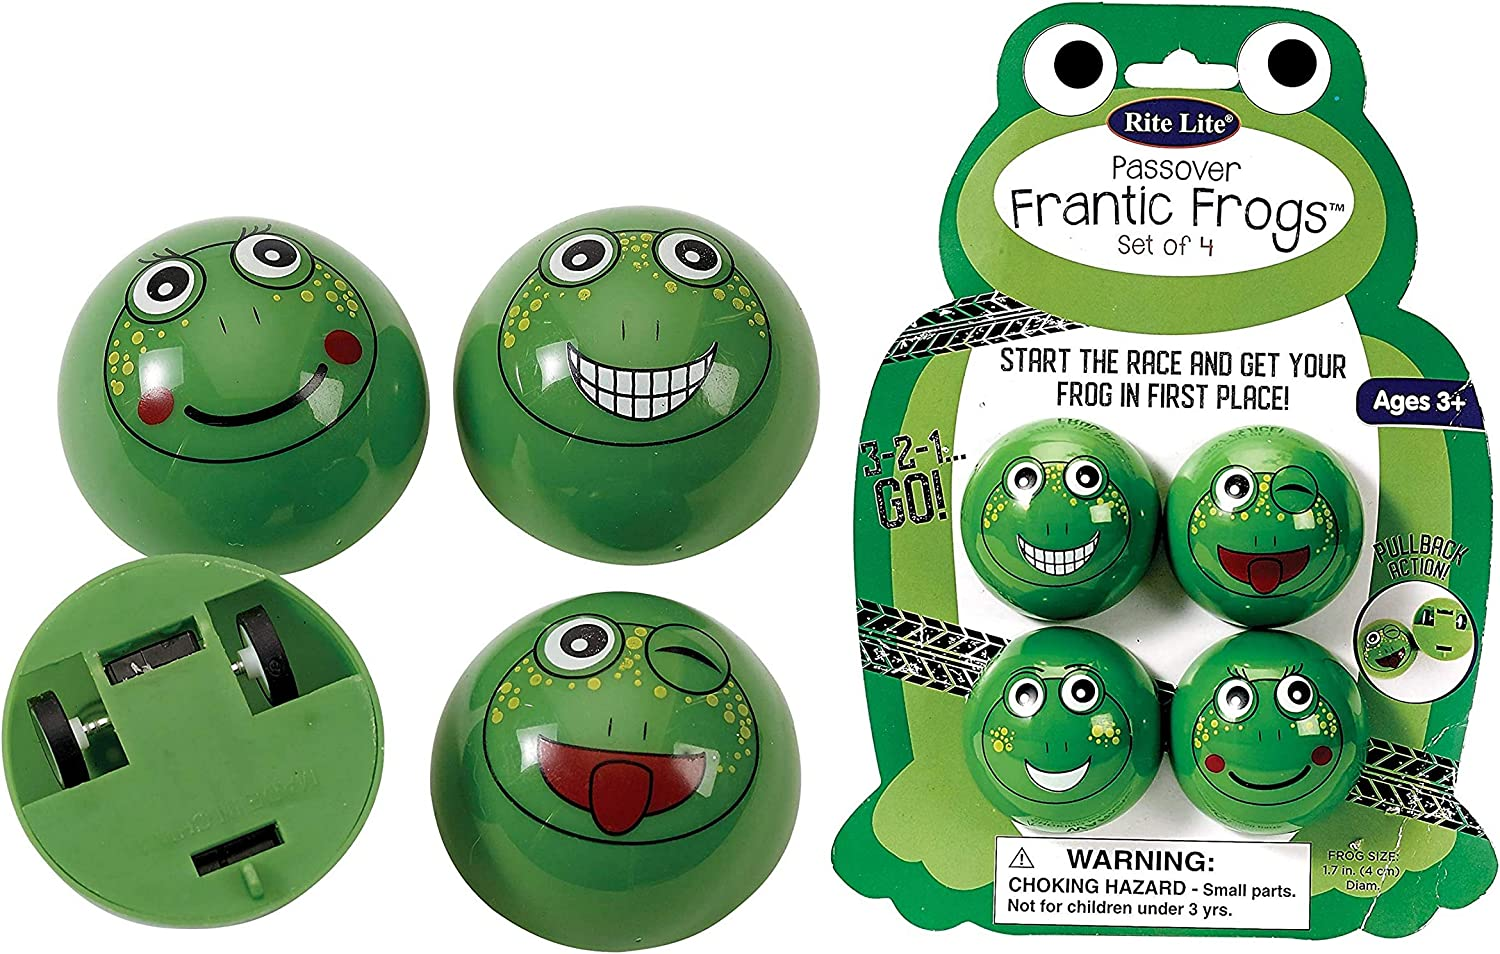 Rite Lite Classic Racing Frantic Frogs - for Toys Fun Kid latest Educational